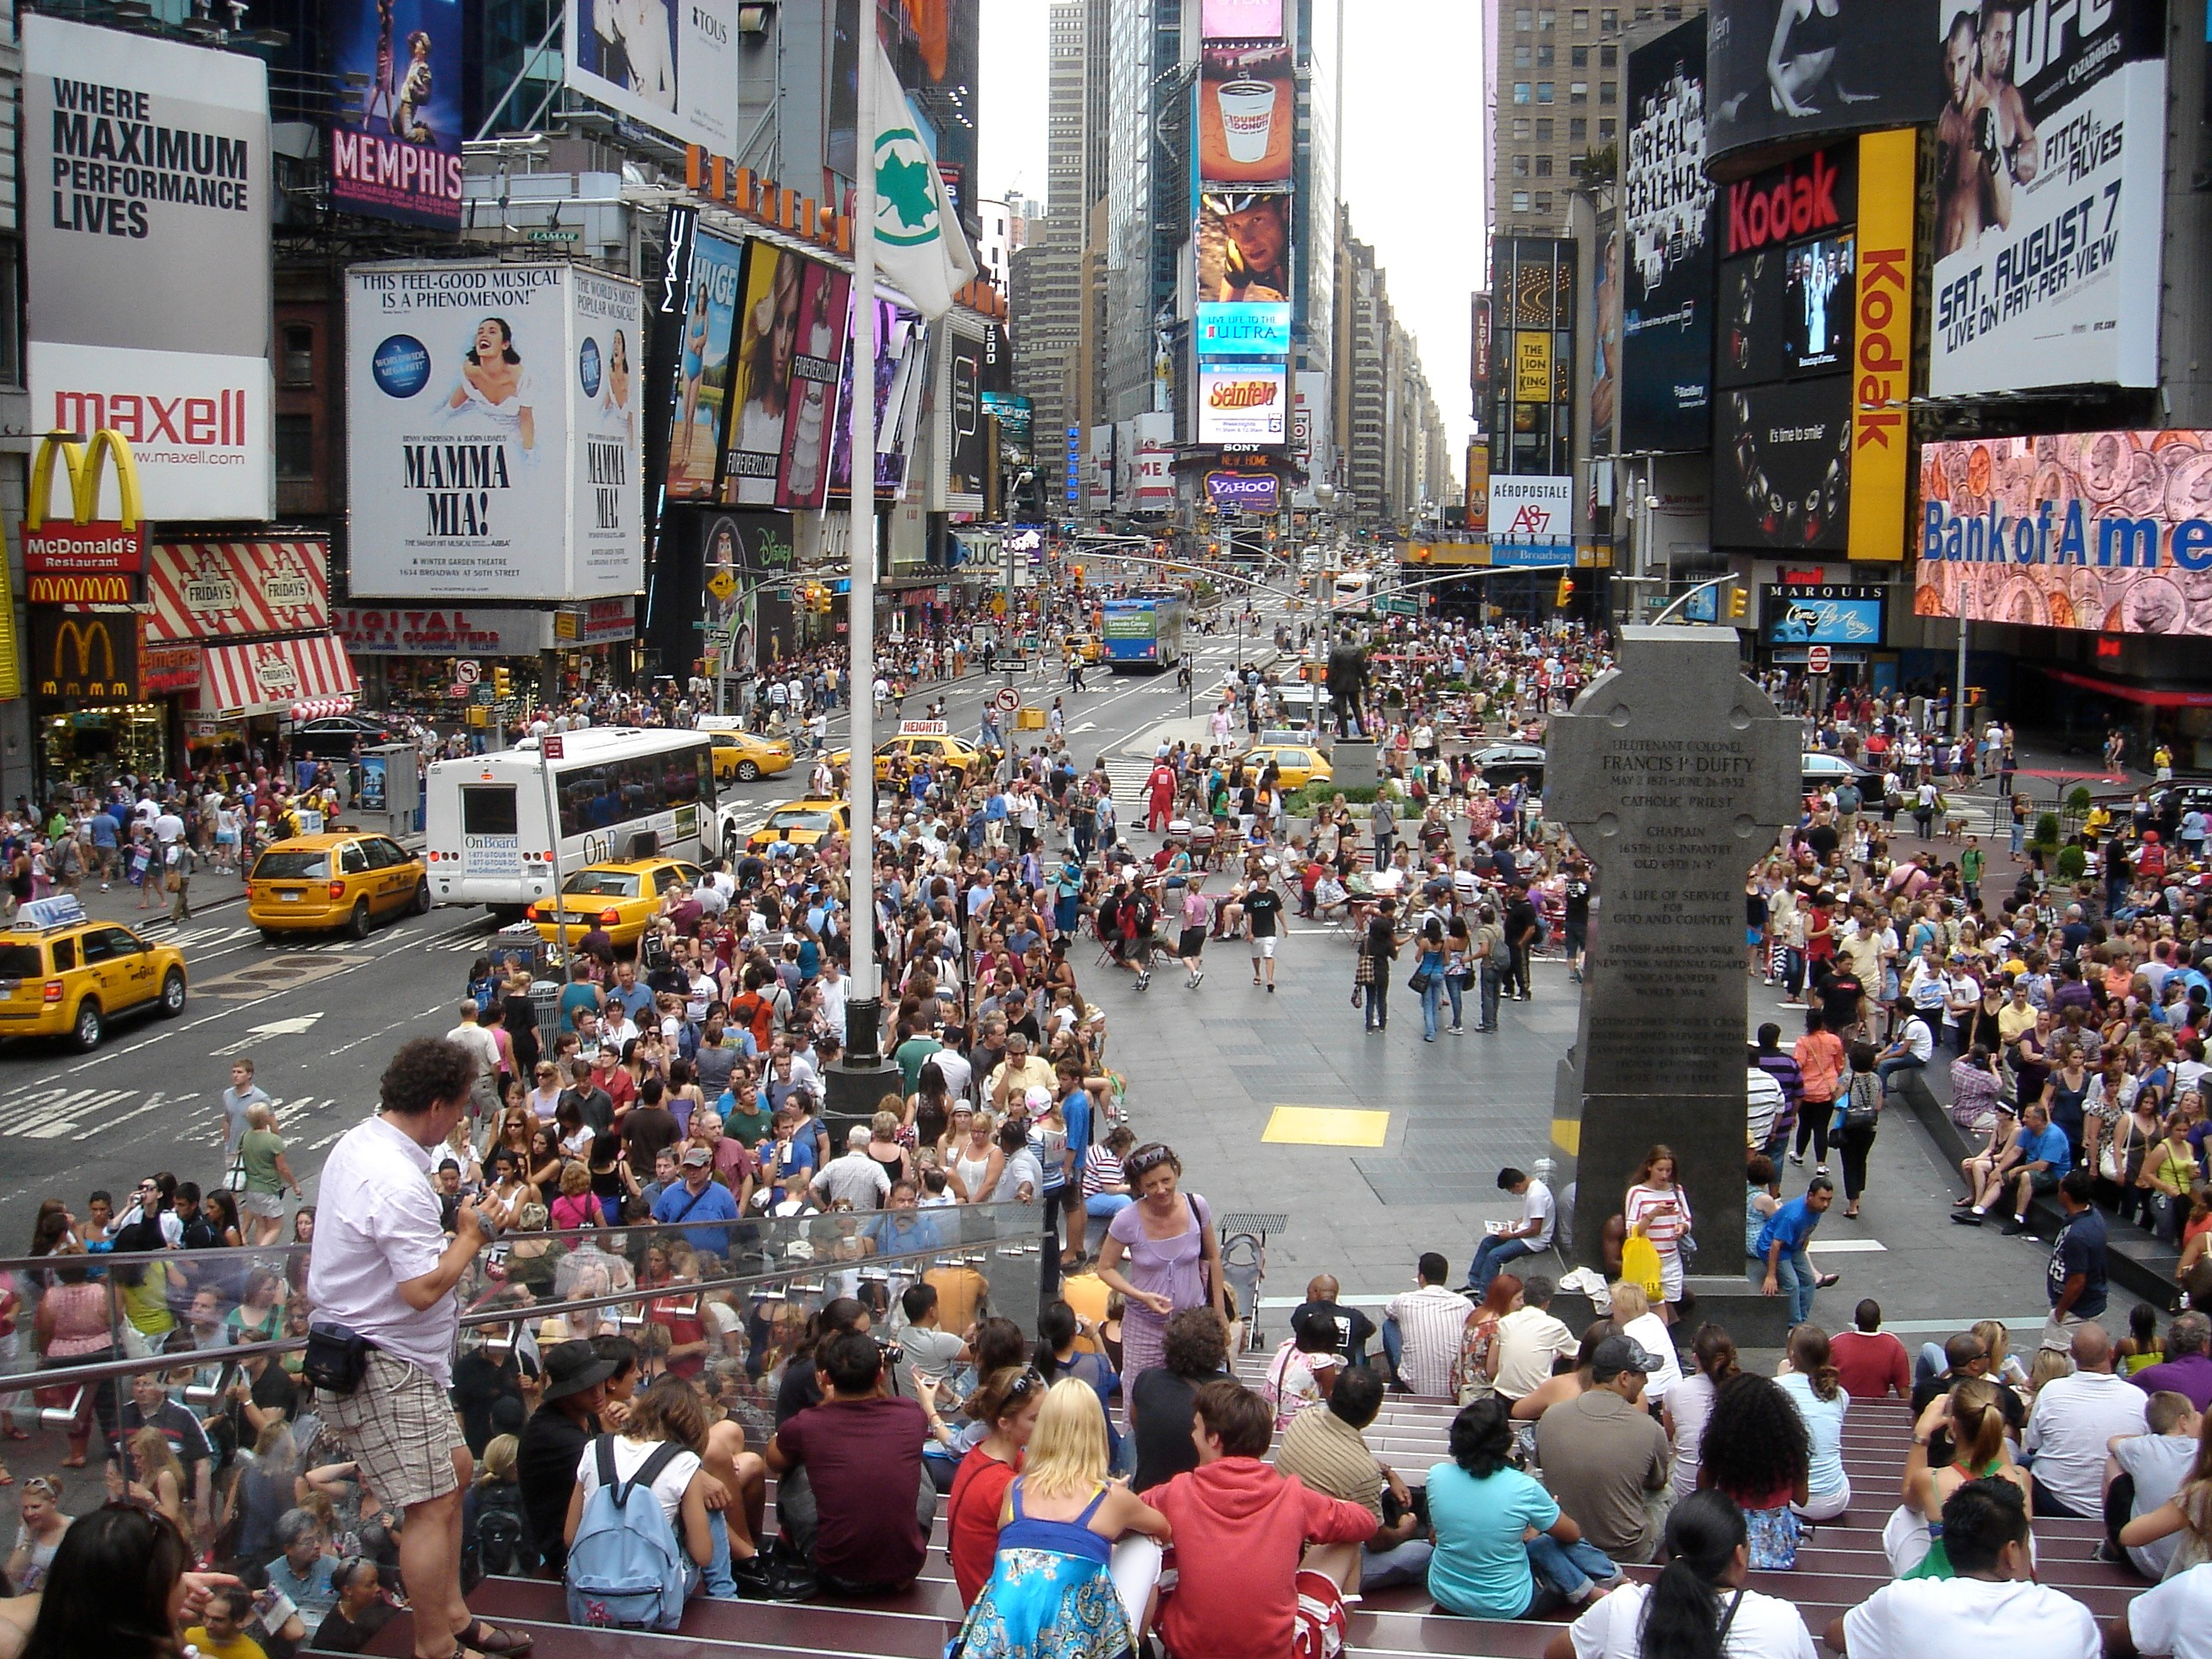 Times square New York.JPG